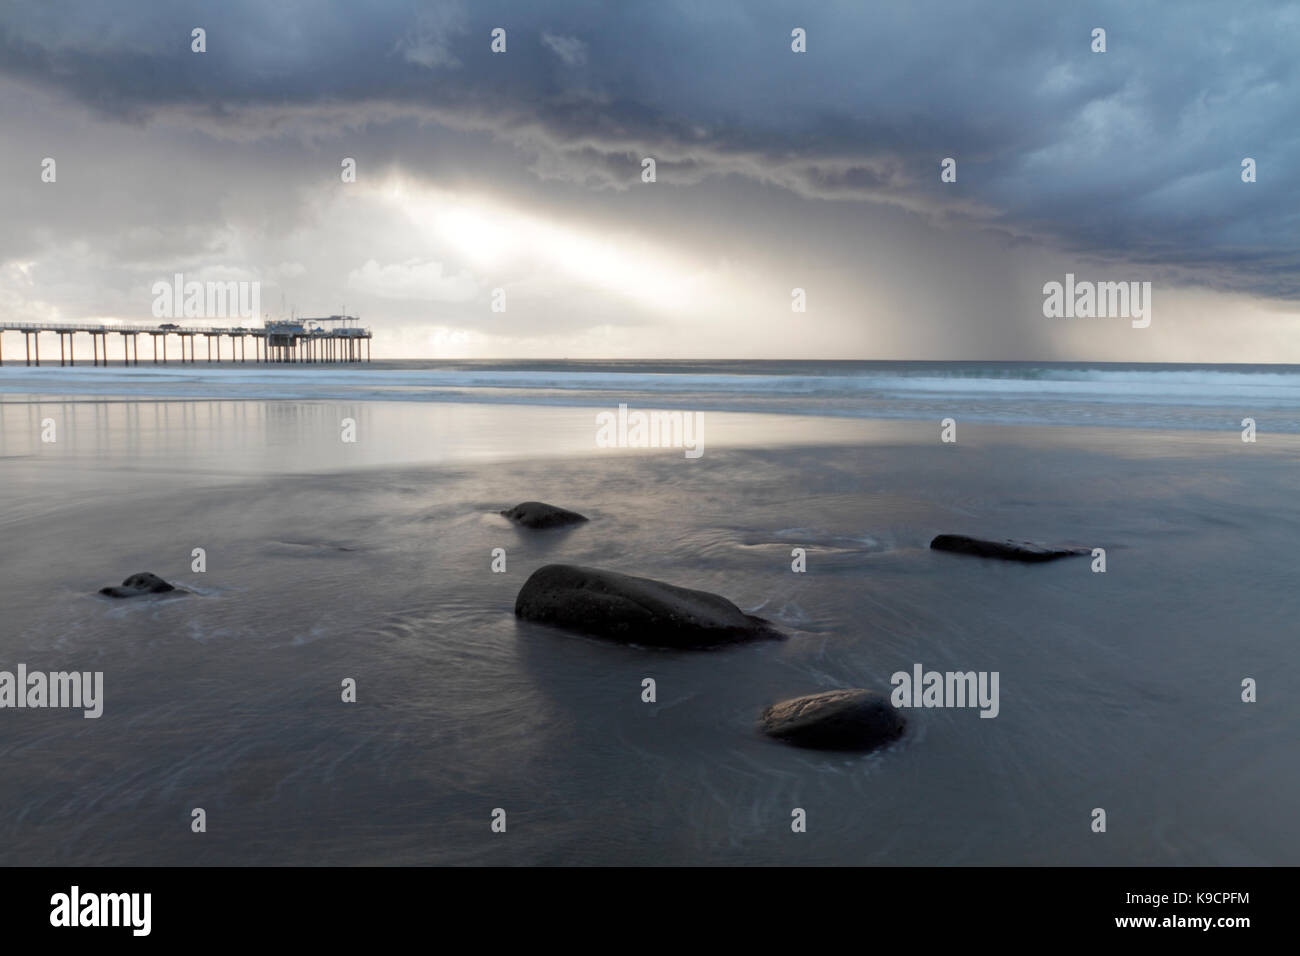 Scripps Pier, La Jolla, San Diego, viewed during a rainstorm from the beach with rocks in the foreground and dramatic - Stock Image